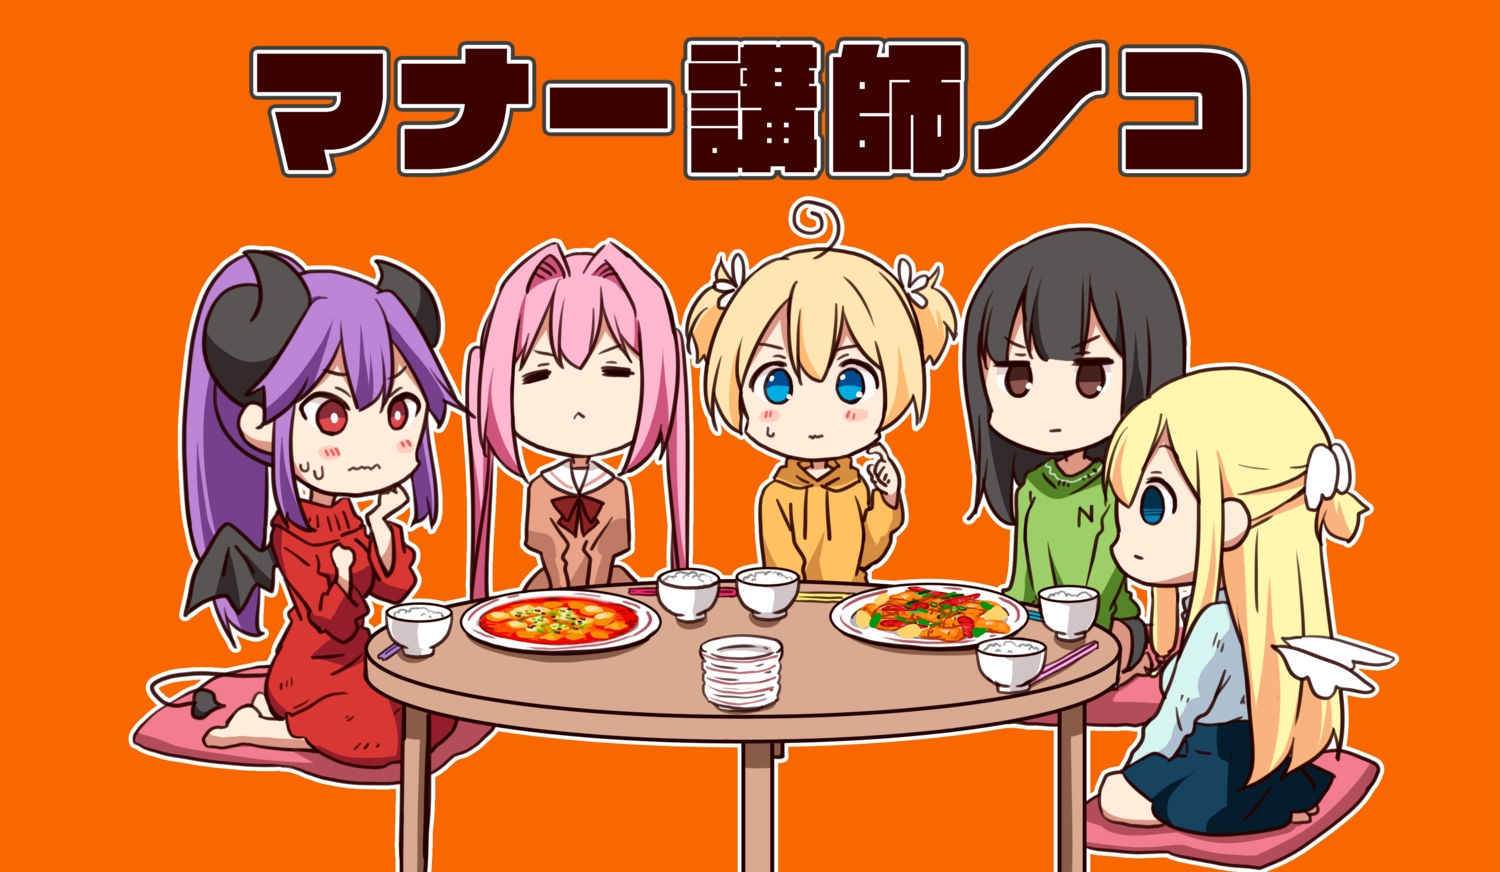 amatsuka_poi aqua_eyes black_hair blonde_hair blue_eyes brown_eyes chijou_noko chikanoko demon dress food group hoodie horns long_hair naitou_mare orange pink_hair ponytail purple_hair ragho_no_erika red_eyes school_uniform short_hair tail tsugou_makina twintails uchino_chika wings